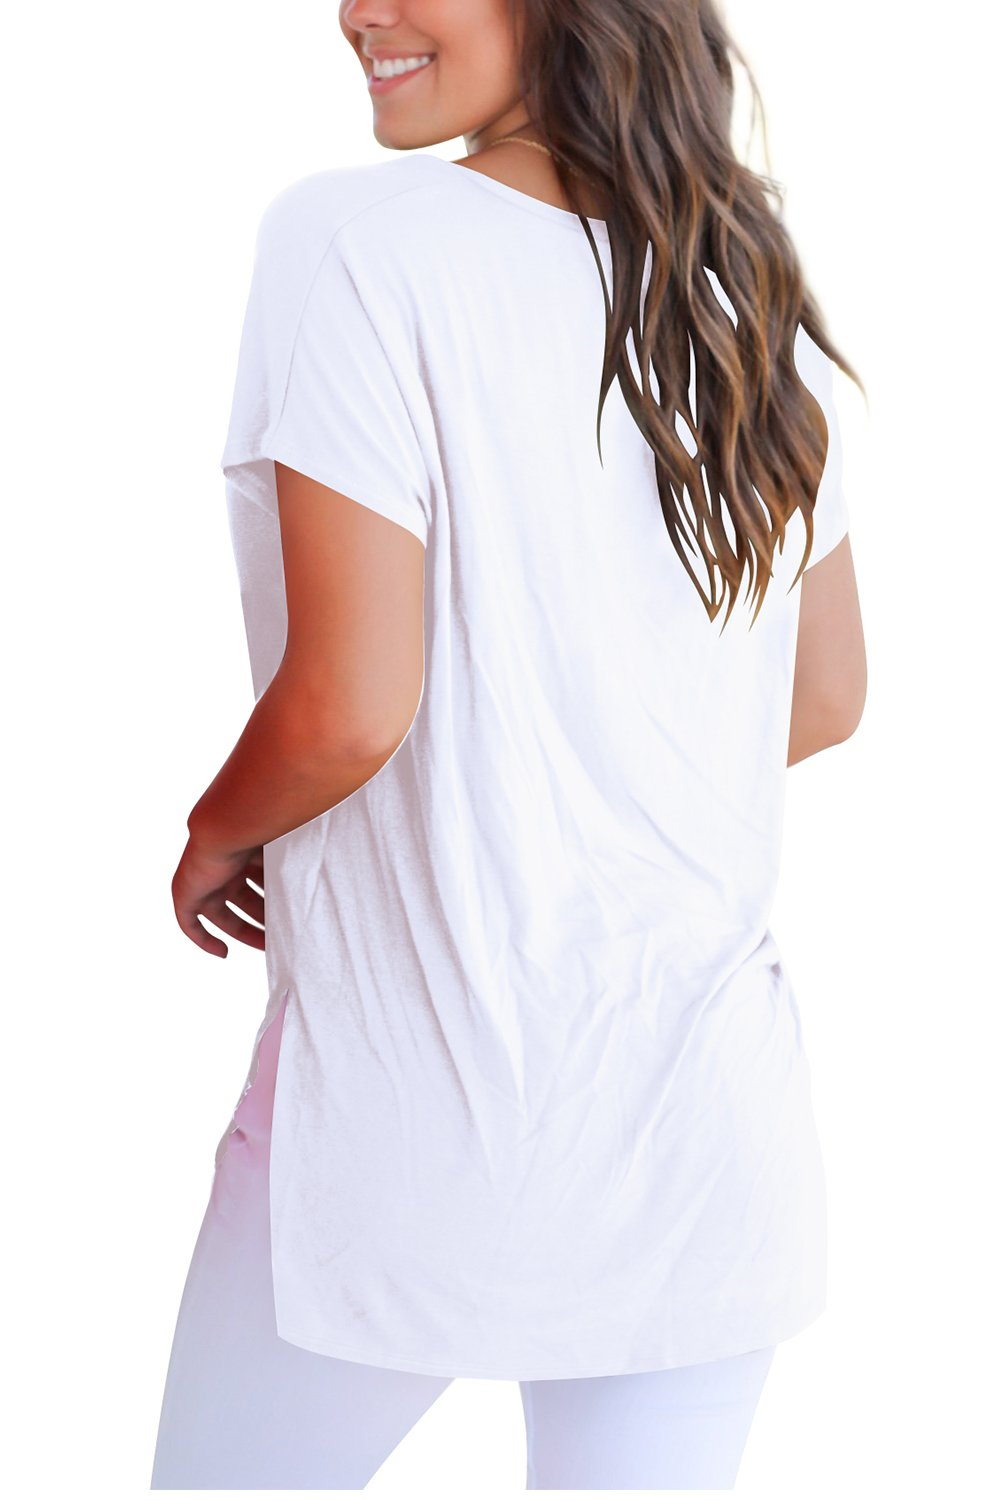 FAVALIVE T Shirts for Women Short Sleeve Shirts and Blouses V Neck Tee Tops White XL by FAVALIVE (Image #3)